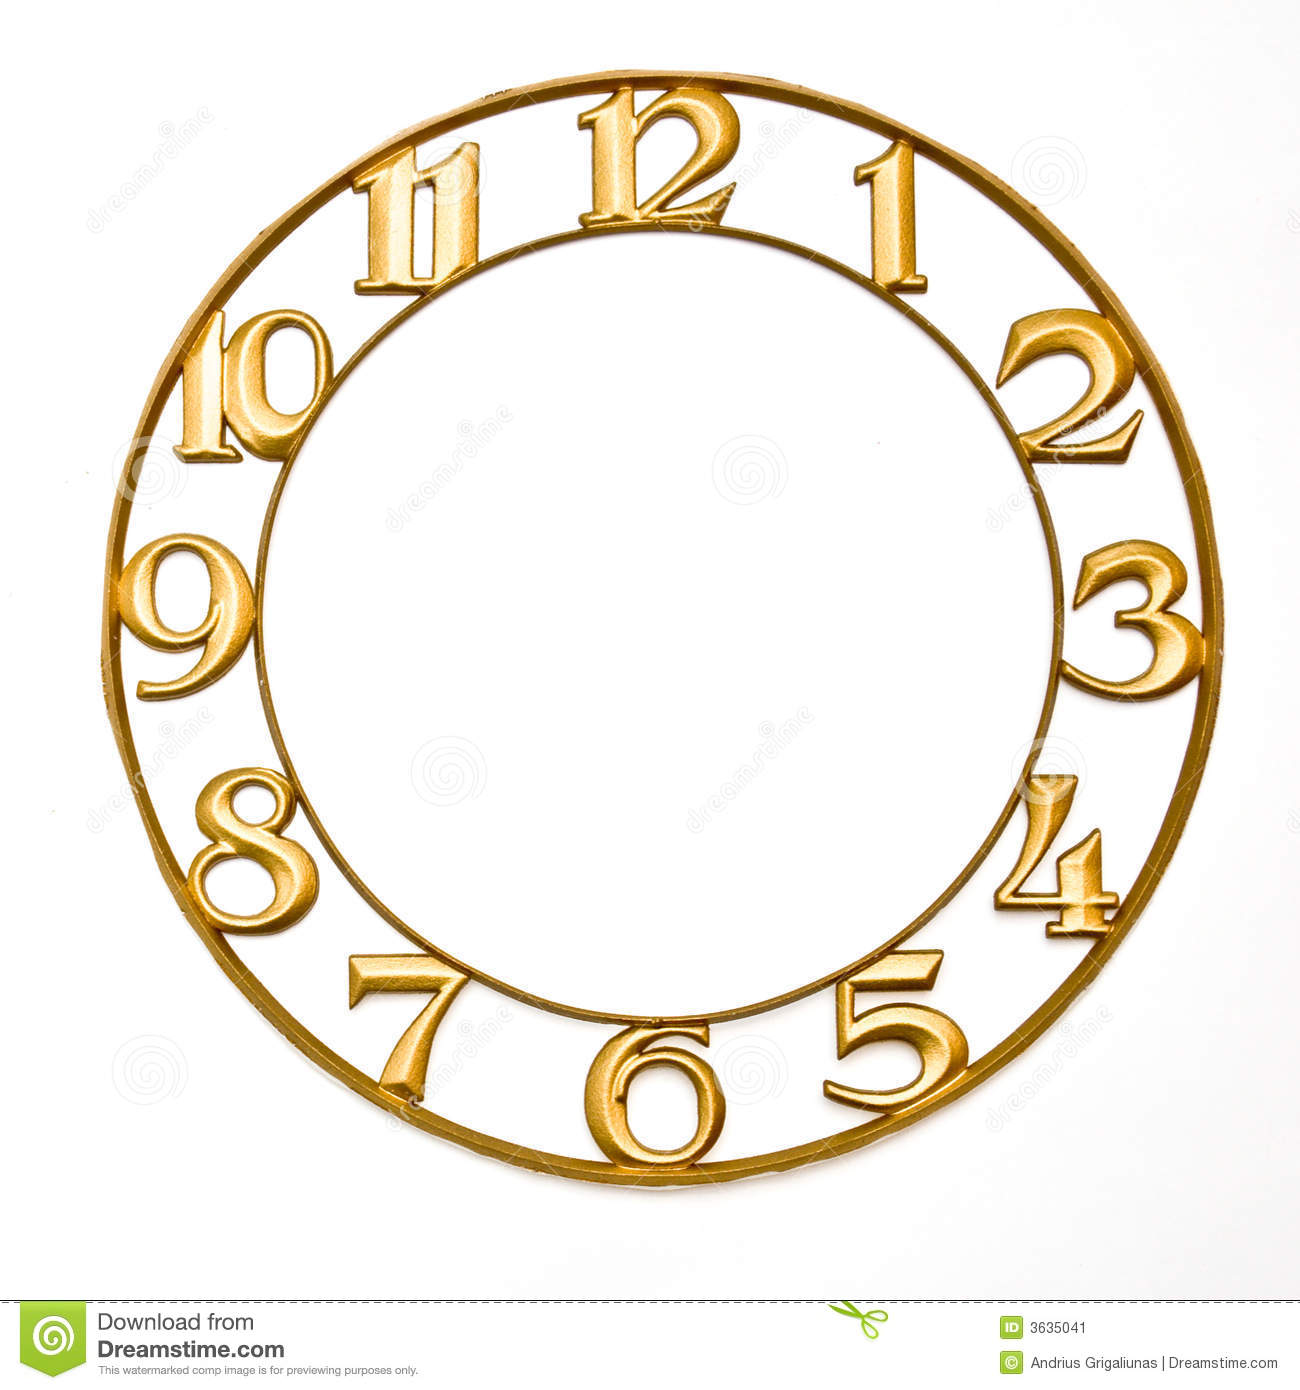 Clock with no hands clipart graphic library stock No Hands Clipart - Clipart Kid graphic library stock